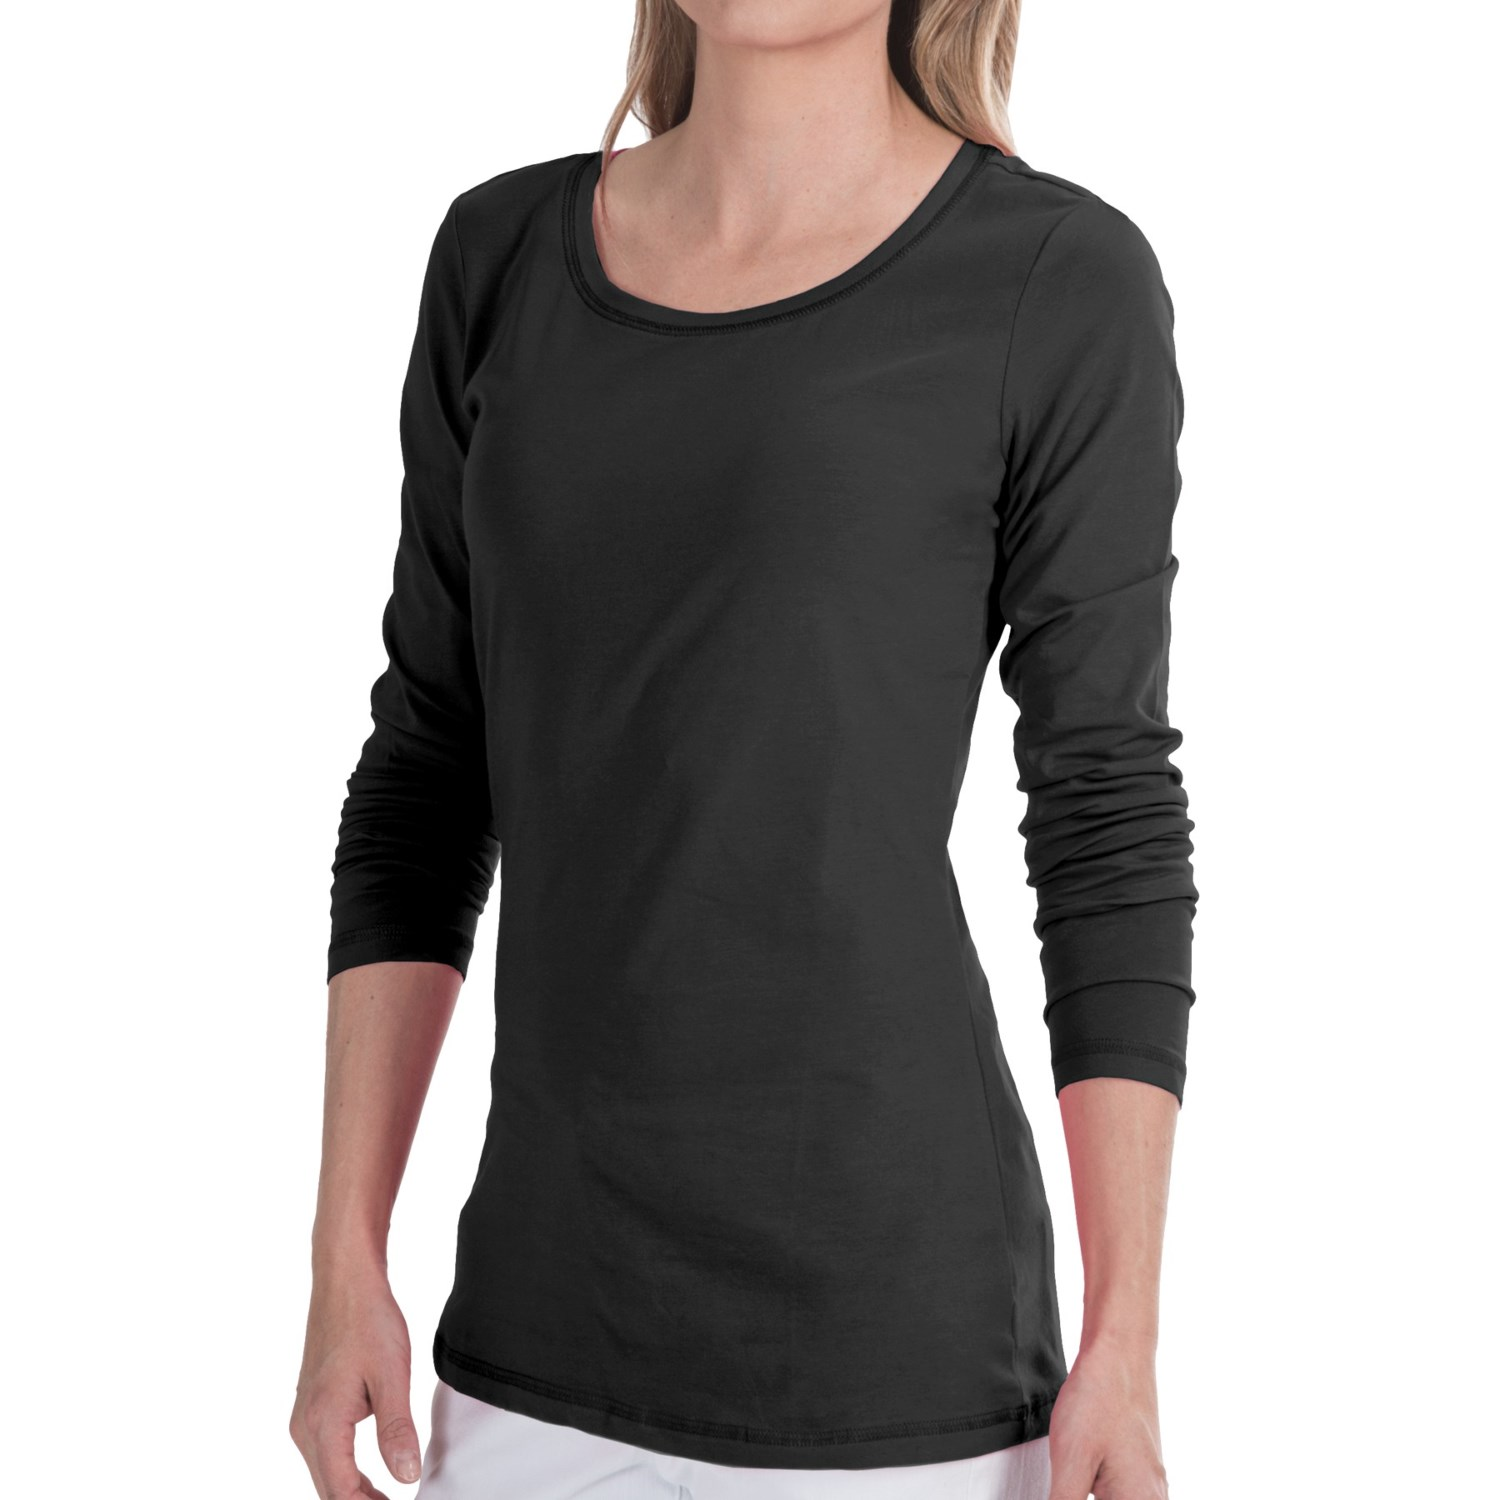 Stretch Cotton Jersey Shirt For Women 8785u Save 71